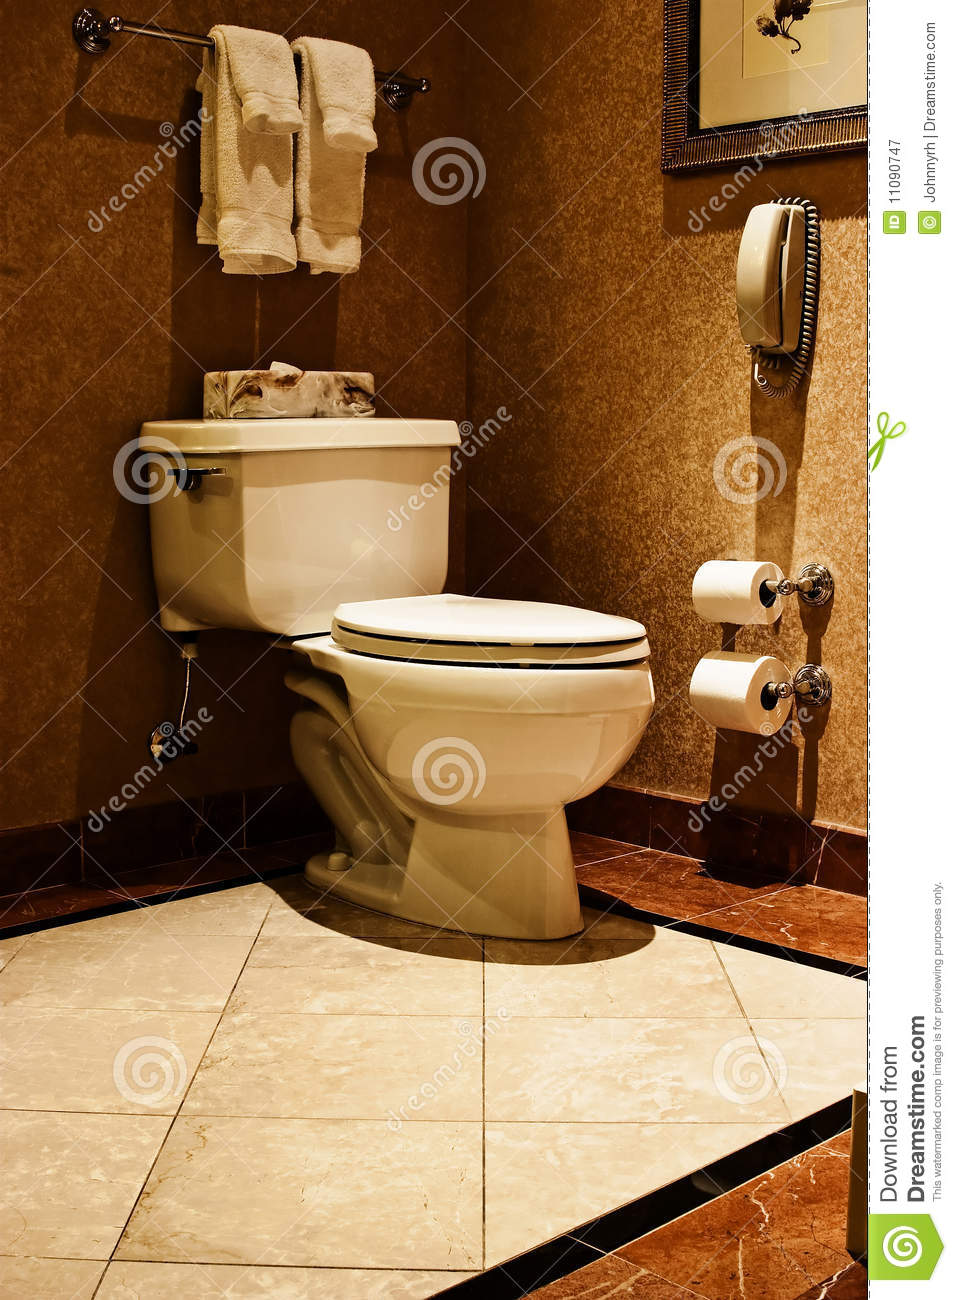 Luxury Toilet Stock Image Image Of Marble Hygiene Paper